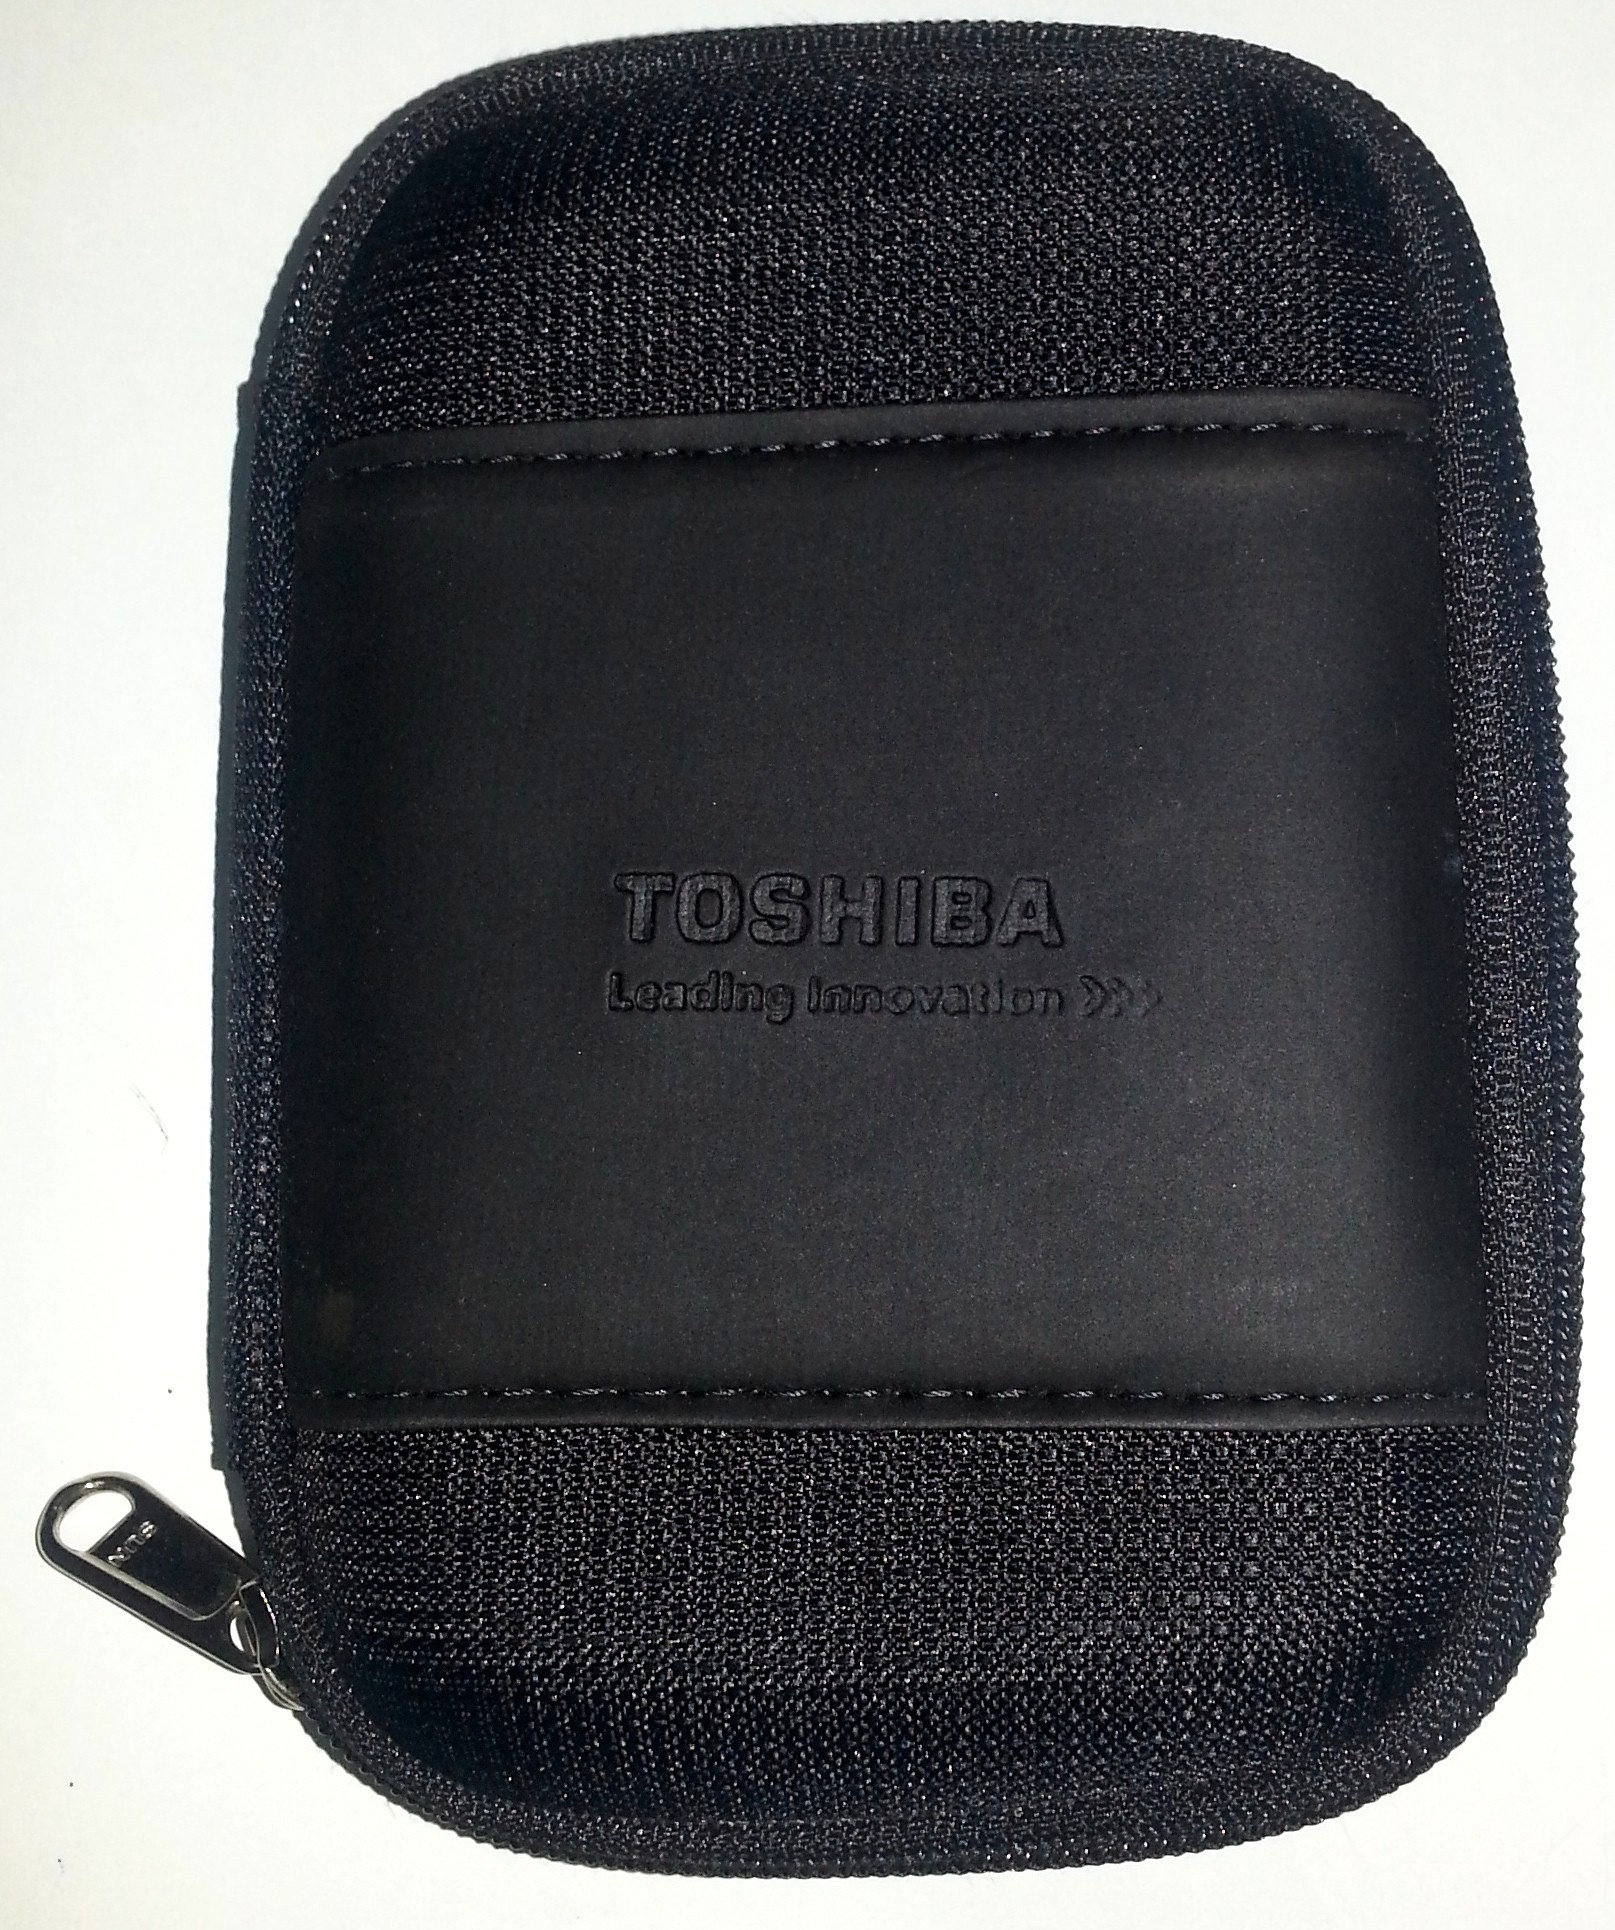 Toshiba HDD External Hard Disk Cover(For All Brand of 2.5 inch Hard Drives, Black)